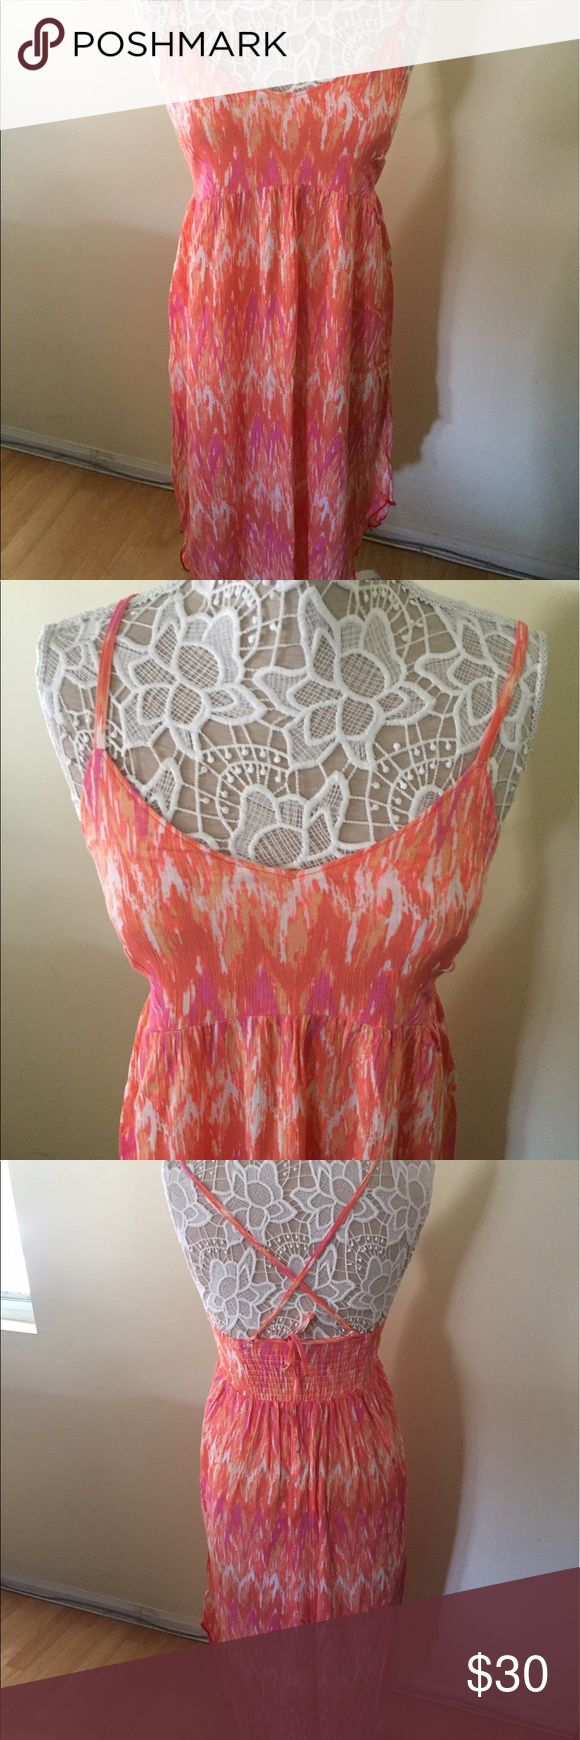 Columbia Sportswear Summer Dress New, never worn summer dress.  Too small for me.  Great for the summer. Columbia Dresses Midi